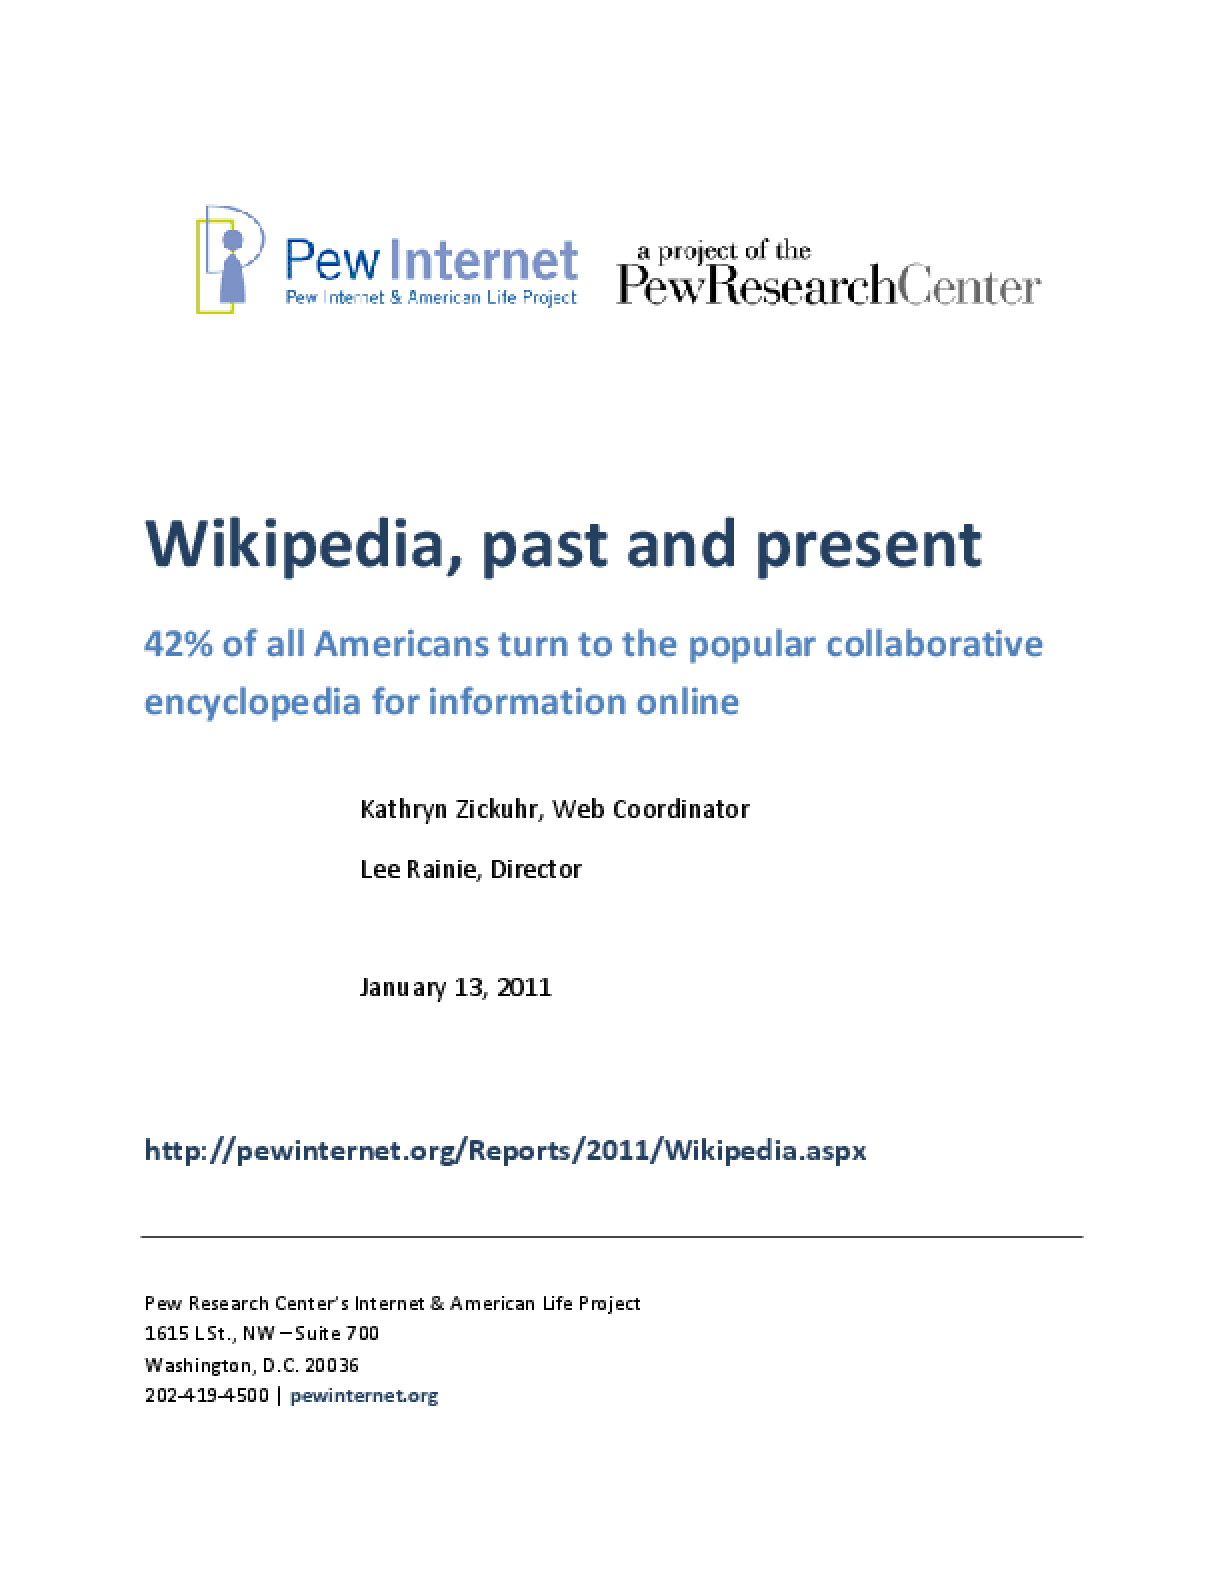 Wikipedia, Past and Present